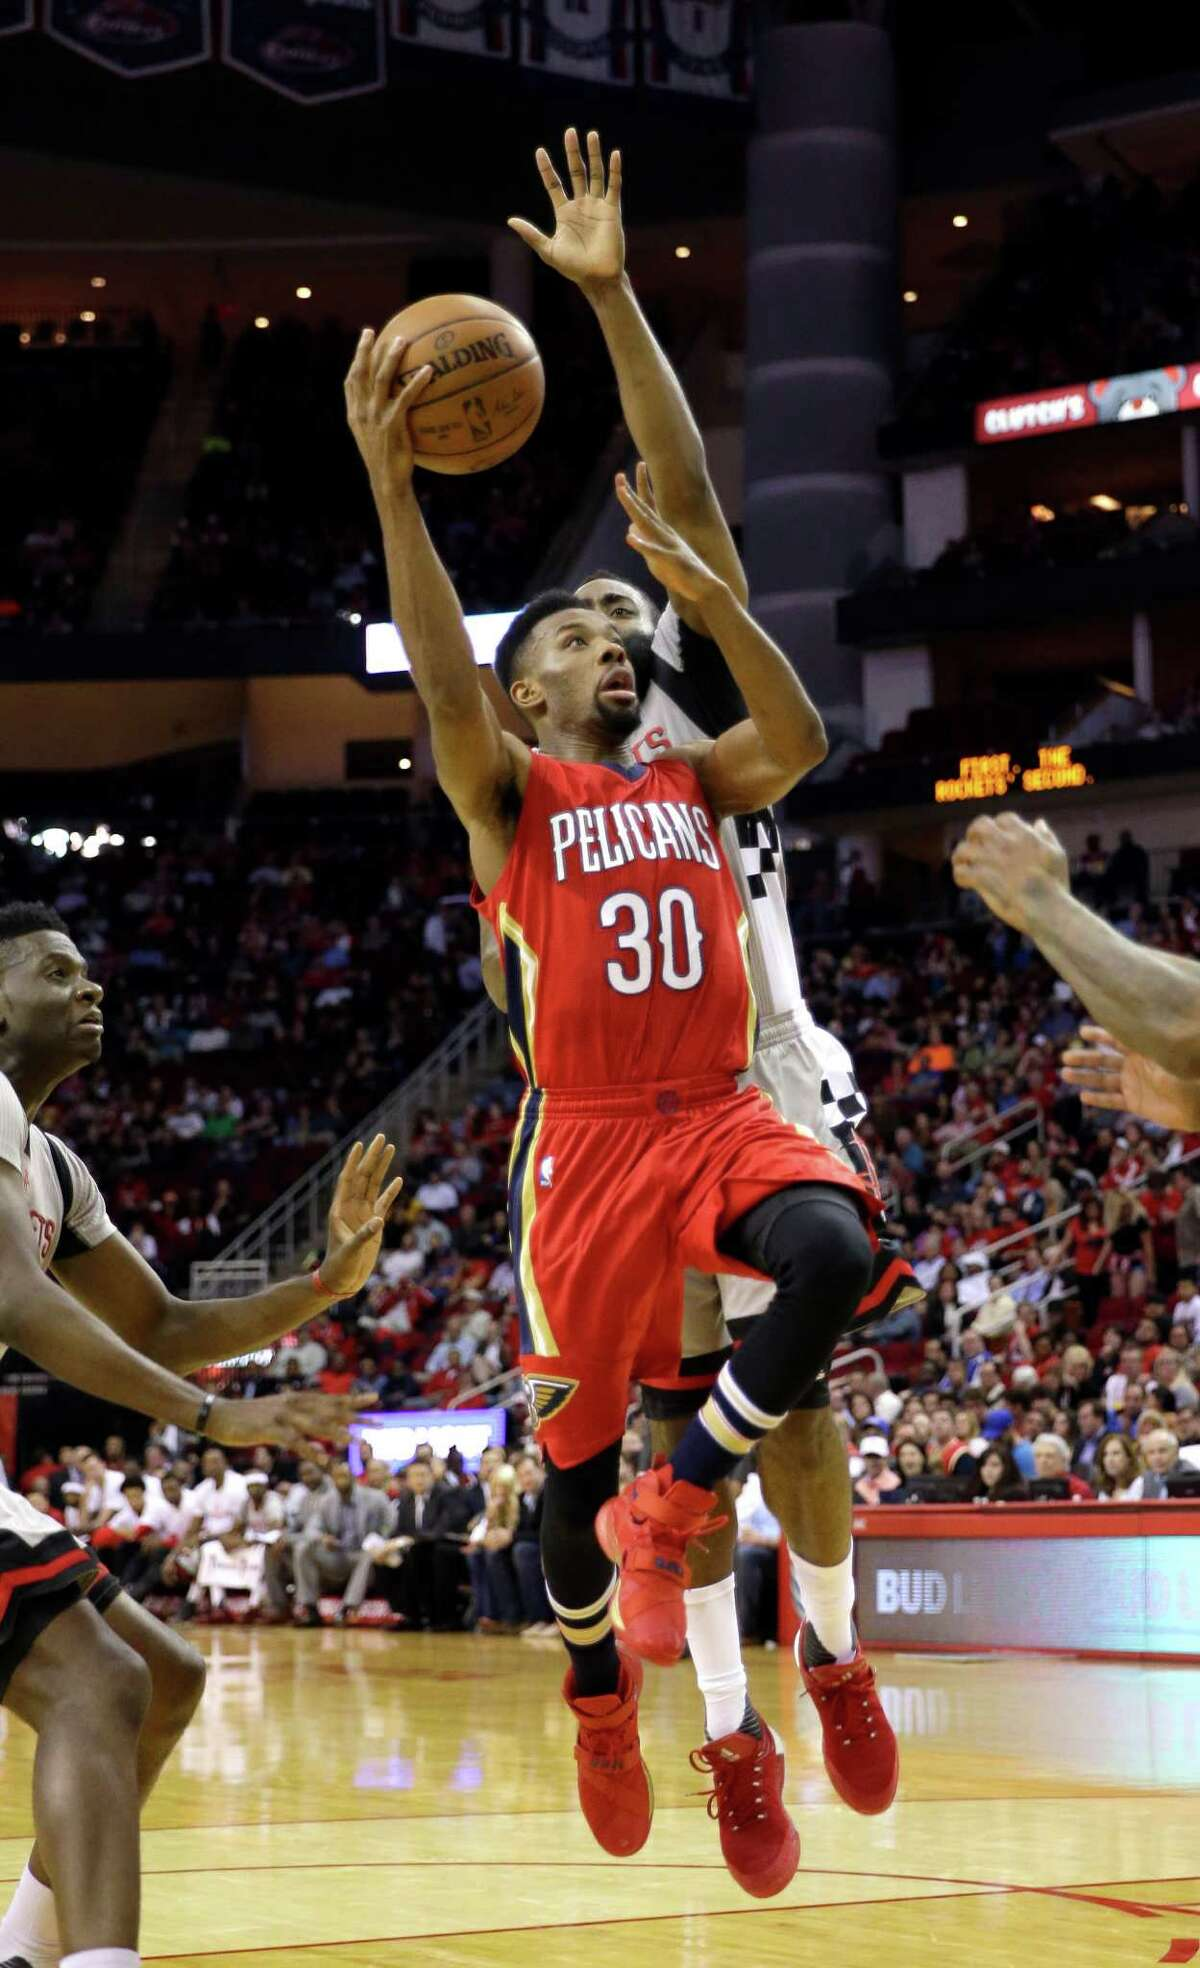 New Orleans Pelicans' Norris Cole (30) goes up for a shot as Houston Rockets' James Harden, rear, defends during the second quarter of an NBA basketball game Wednesday, March 2, 2016, in Houston. (AP Photo/David J. Phillip)